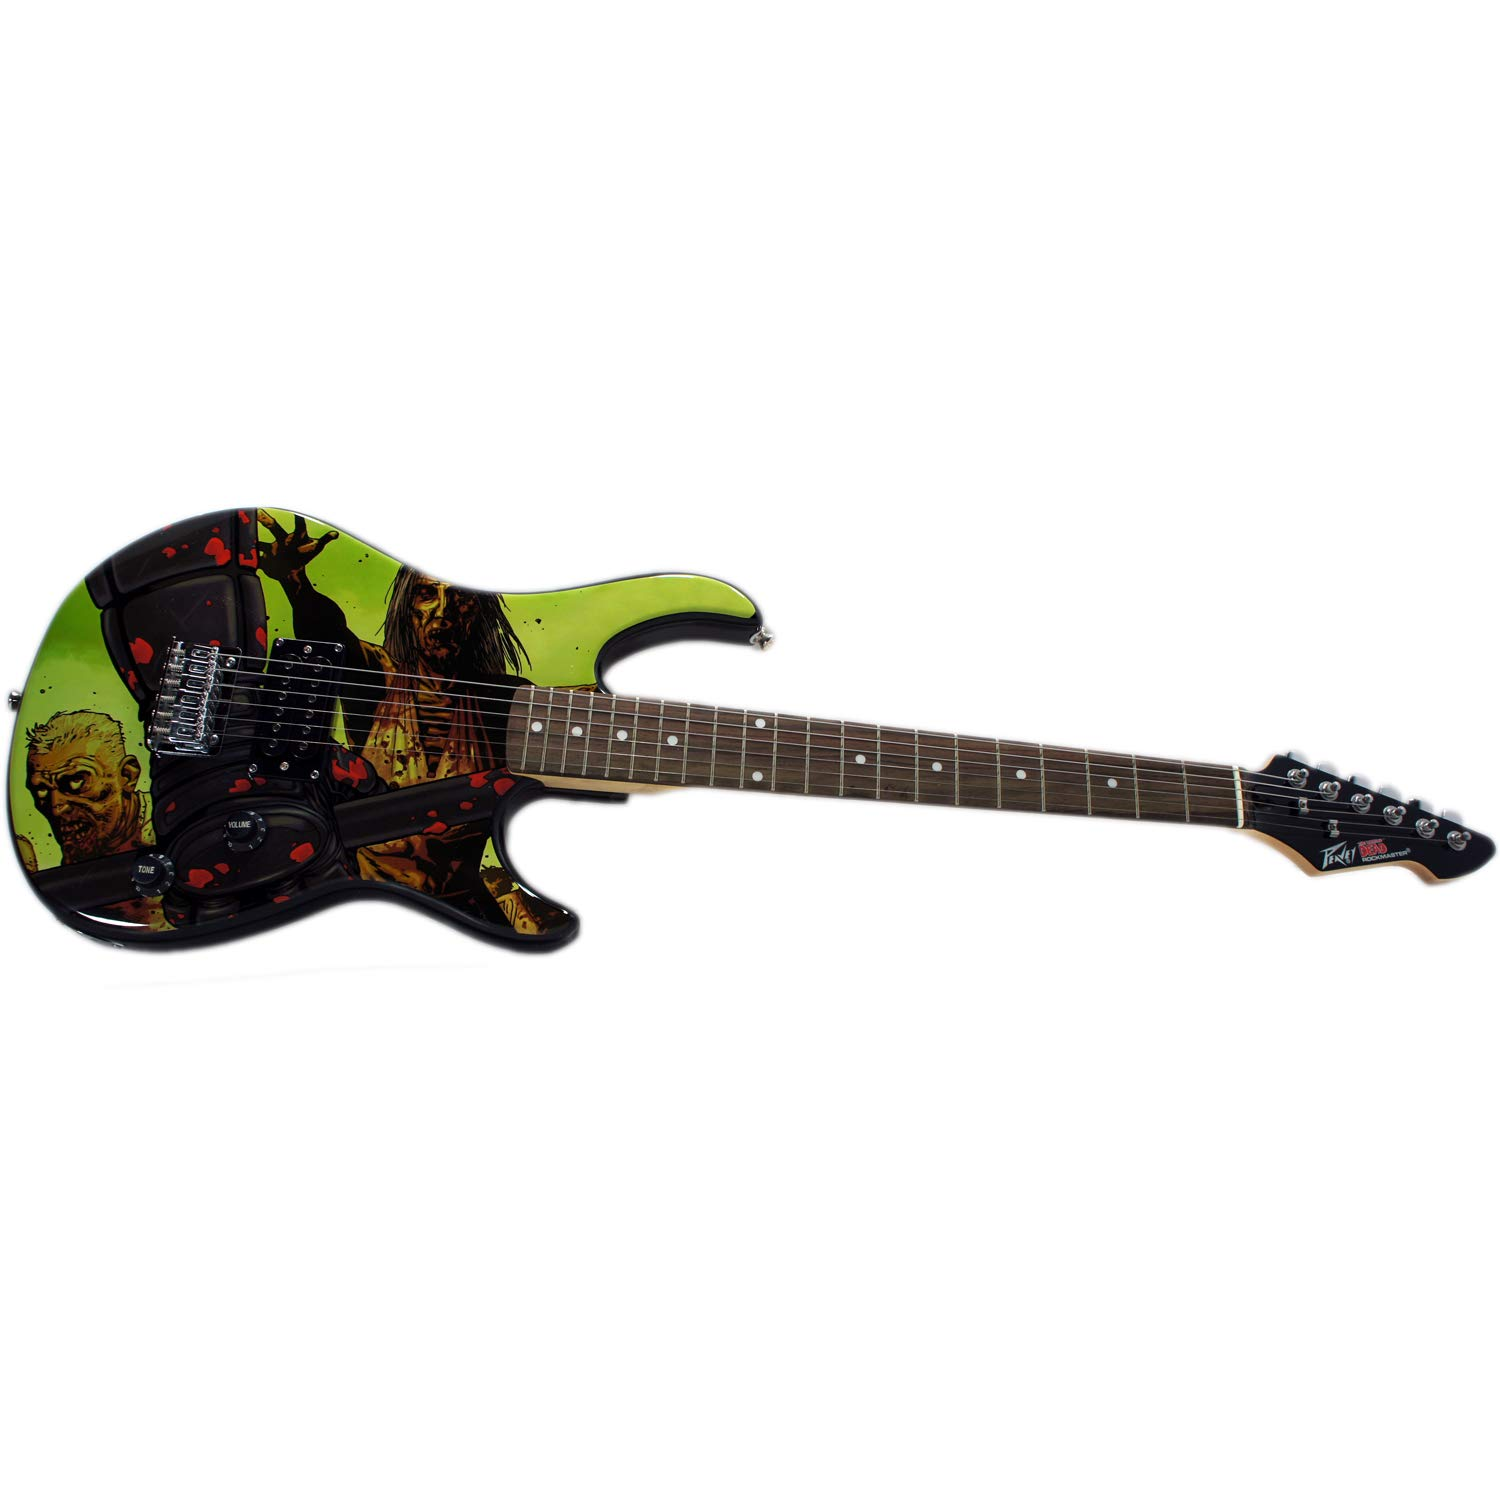 Peavey 03019690 26 Rockmaster Electric Guitar, The Walking Dead Riot by Peavey